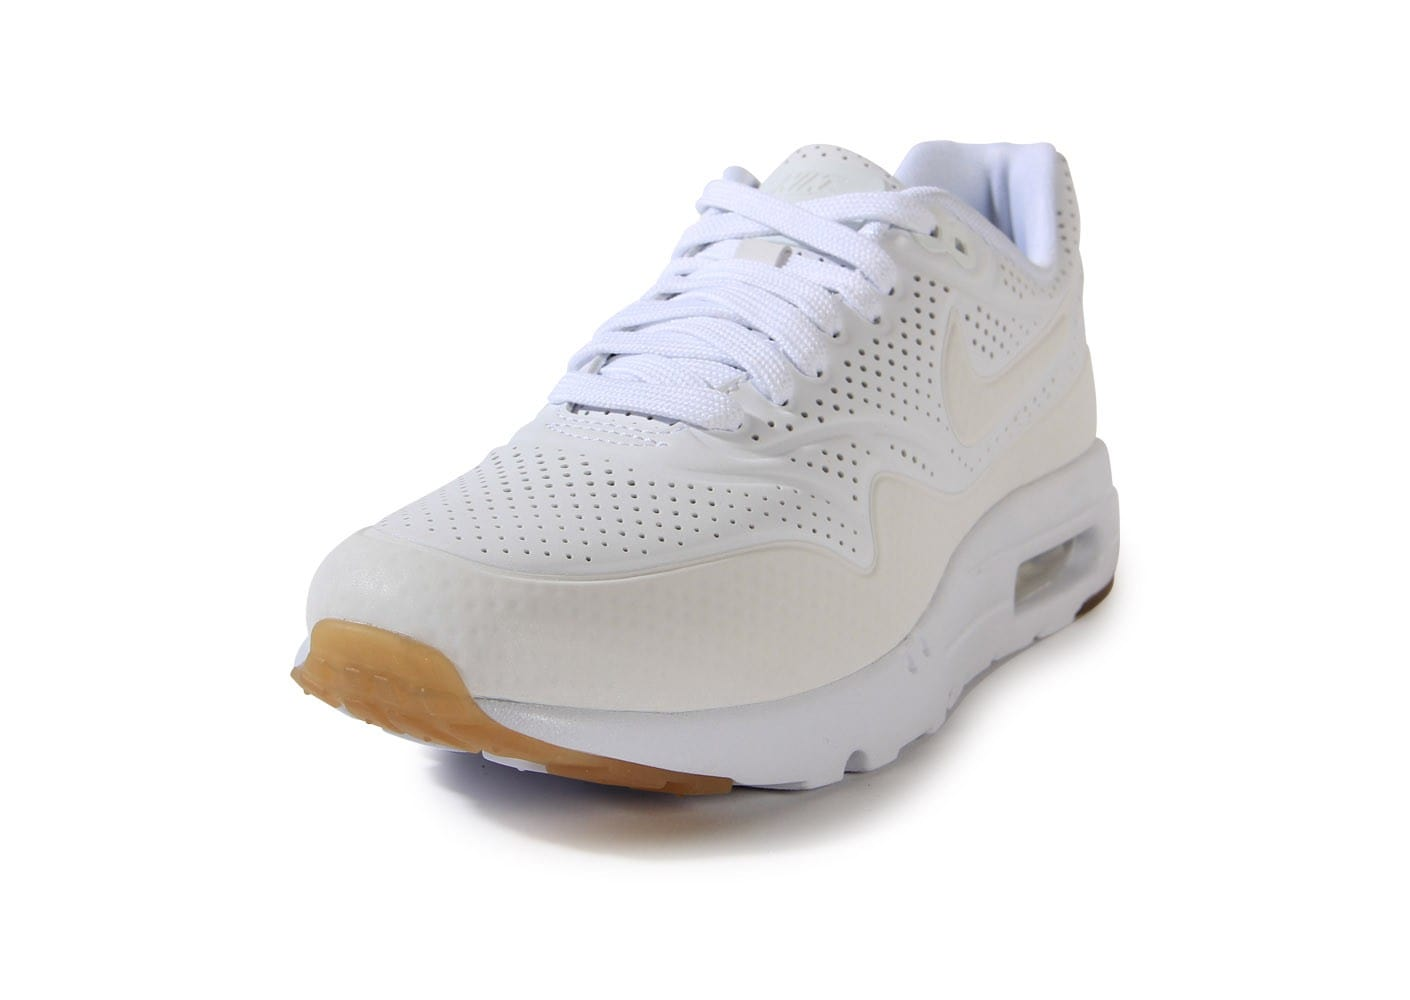 buy online e9e54 bf4c6 nike ultra moire blanche. Nike Cortez Homme Femme Ultra Moire Chaussures  Sommet Blanc Noir 844893 100 nike ultra moire blanche. Chaussures Nike Air  Max 1 ...